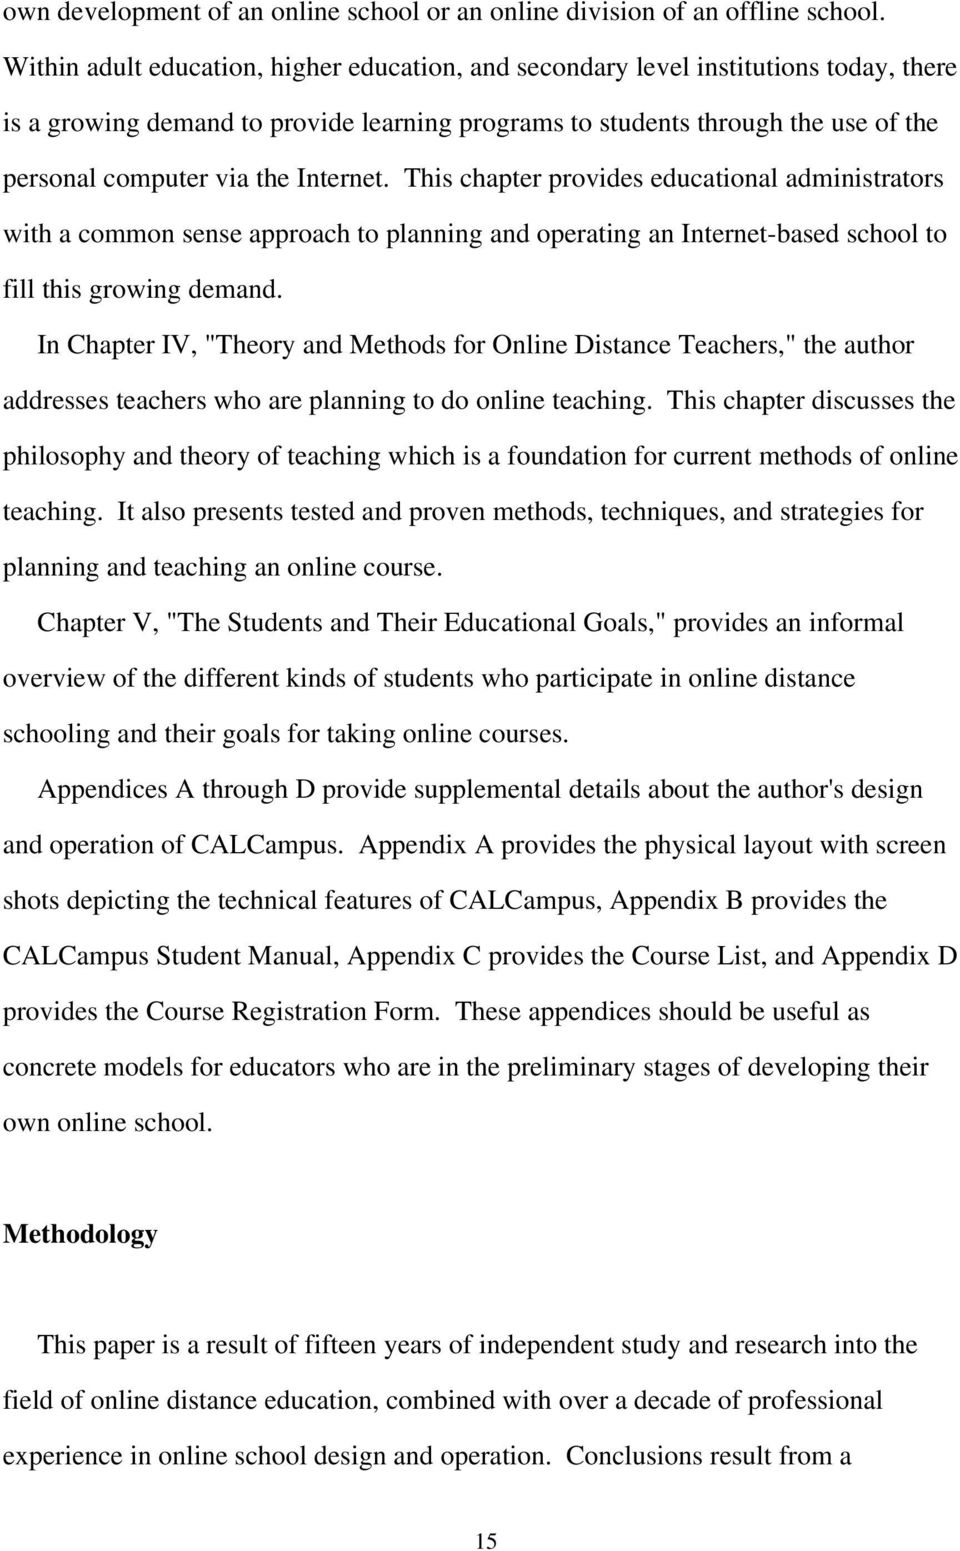 Internet. This chapter provides educational administrators with a common sense approach to planning and operating an Internet-based school to fill this growing demand.